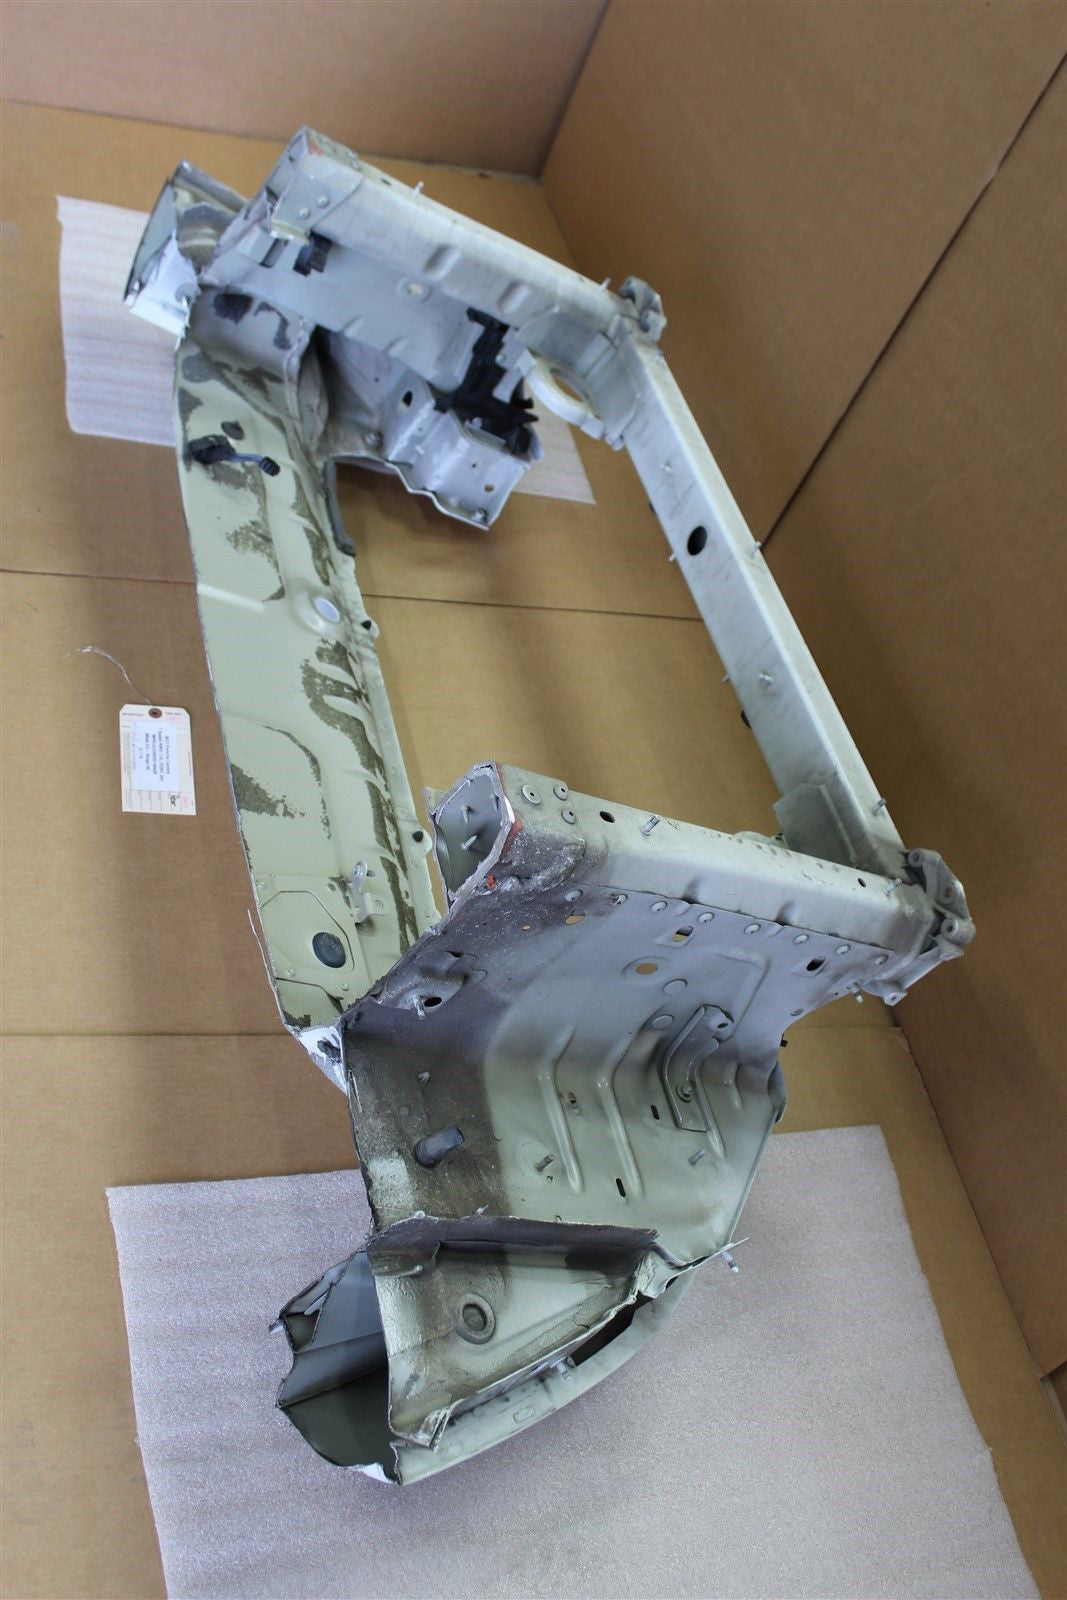 13 Carrera 911 RWD Porsche 991 REAR END EXTERIOR TRUNK FRAME 99150161300 33,116